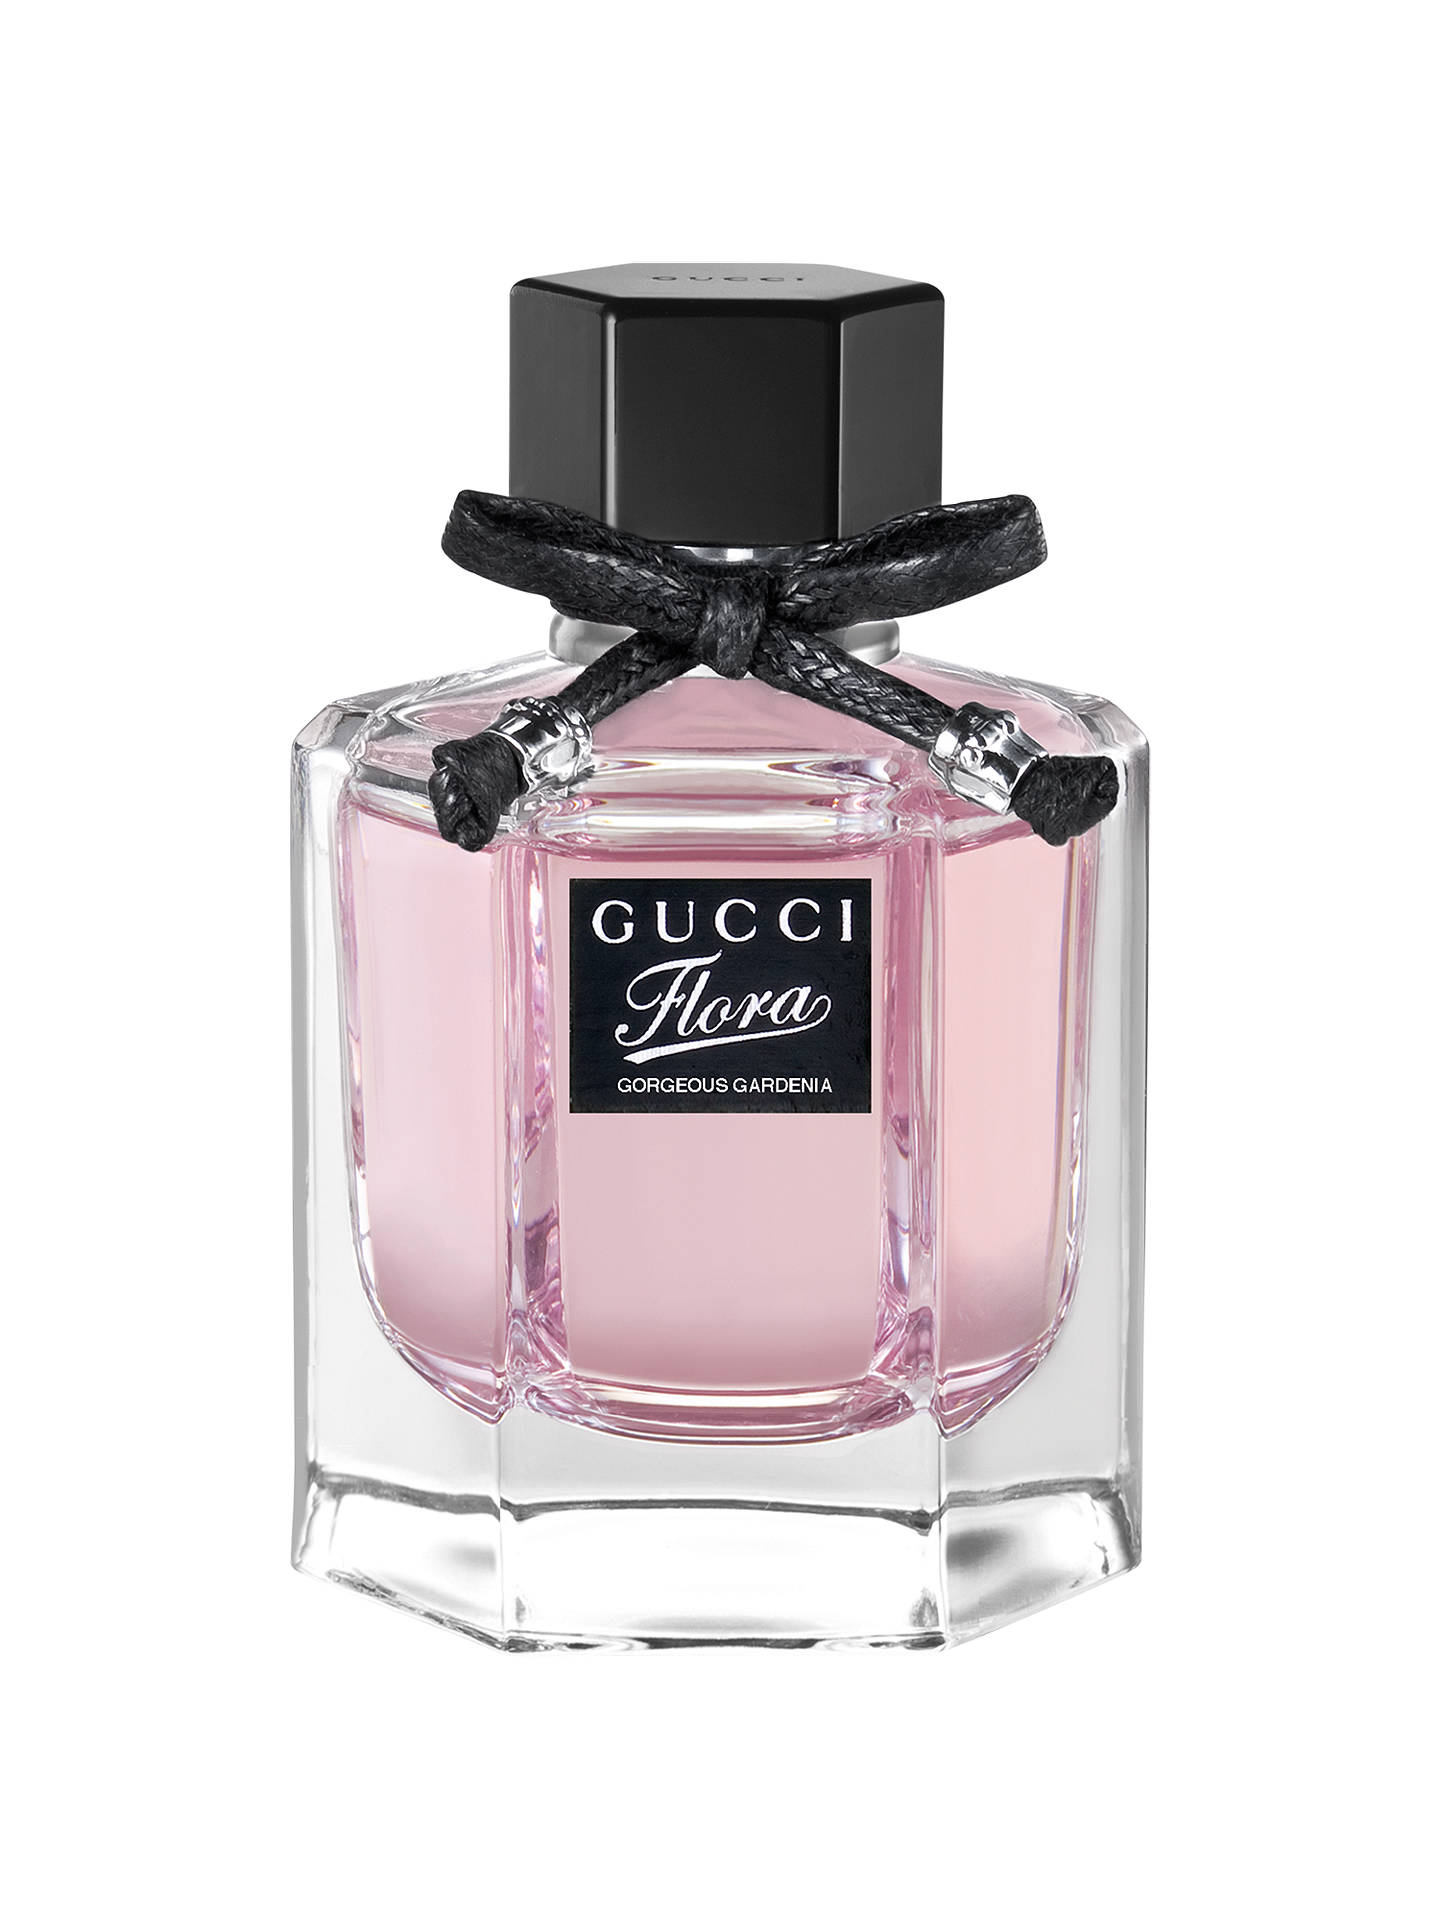 a0f6a58b4b5 Buy Gucci Flora Gorgeous Gardenia Eau de Toilette For Her